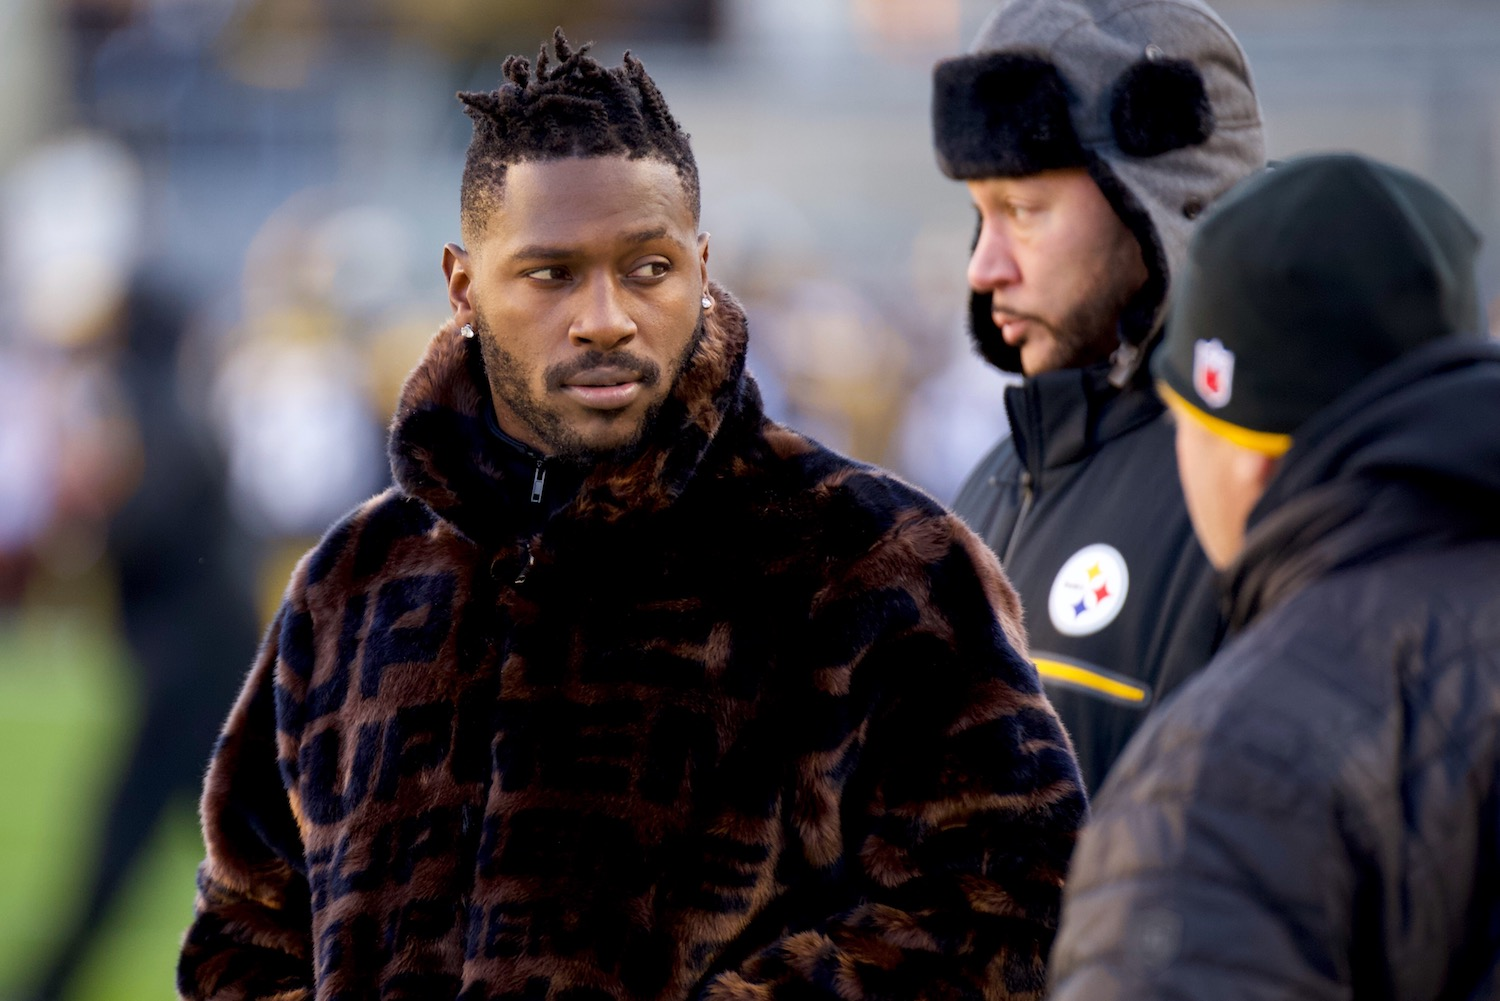 b6e940b731a Antonio Brown sat out week 17 against the Cincinnati Bengals. Steelers head  coach Mike Tomlin said that Brown sat out due to a lower knee injury.